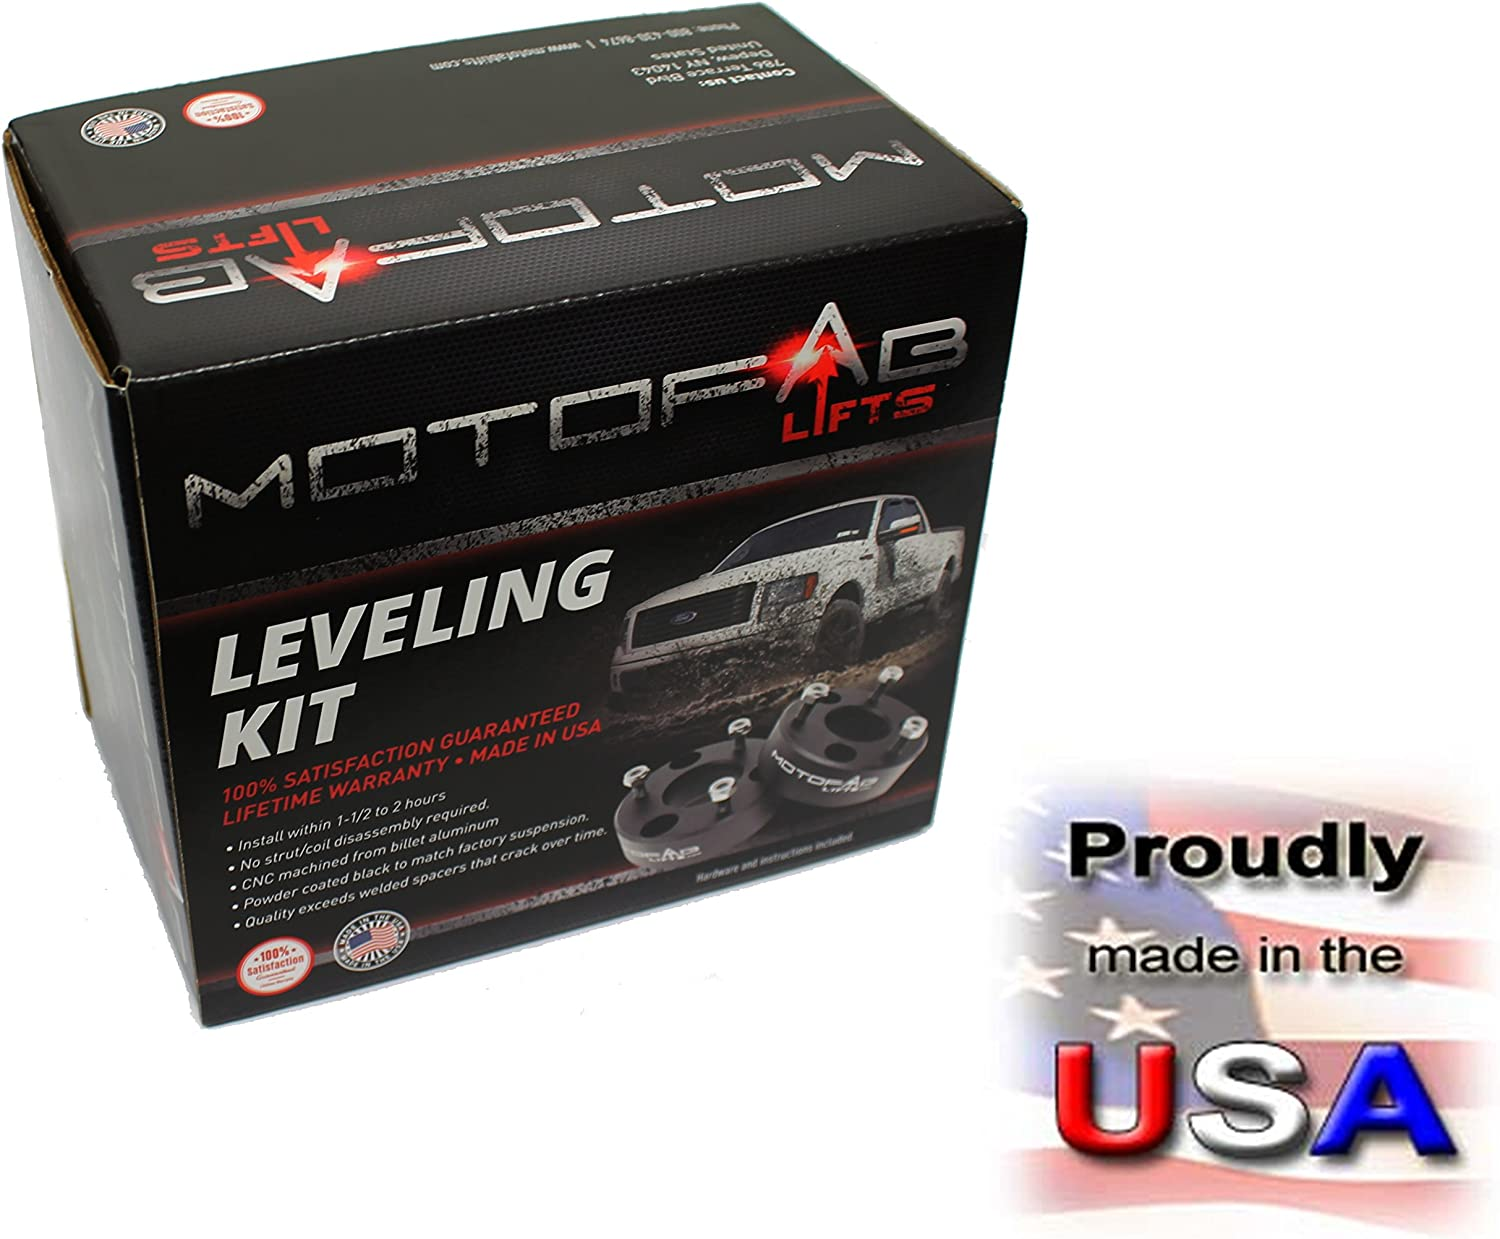 MotoFab Lifts DR-2.5-2.5 Front Leveling Lift Kit That Will Raise The Front Of Your Dodge Ram Pickup 2.5